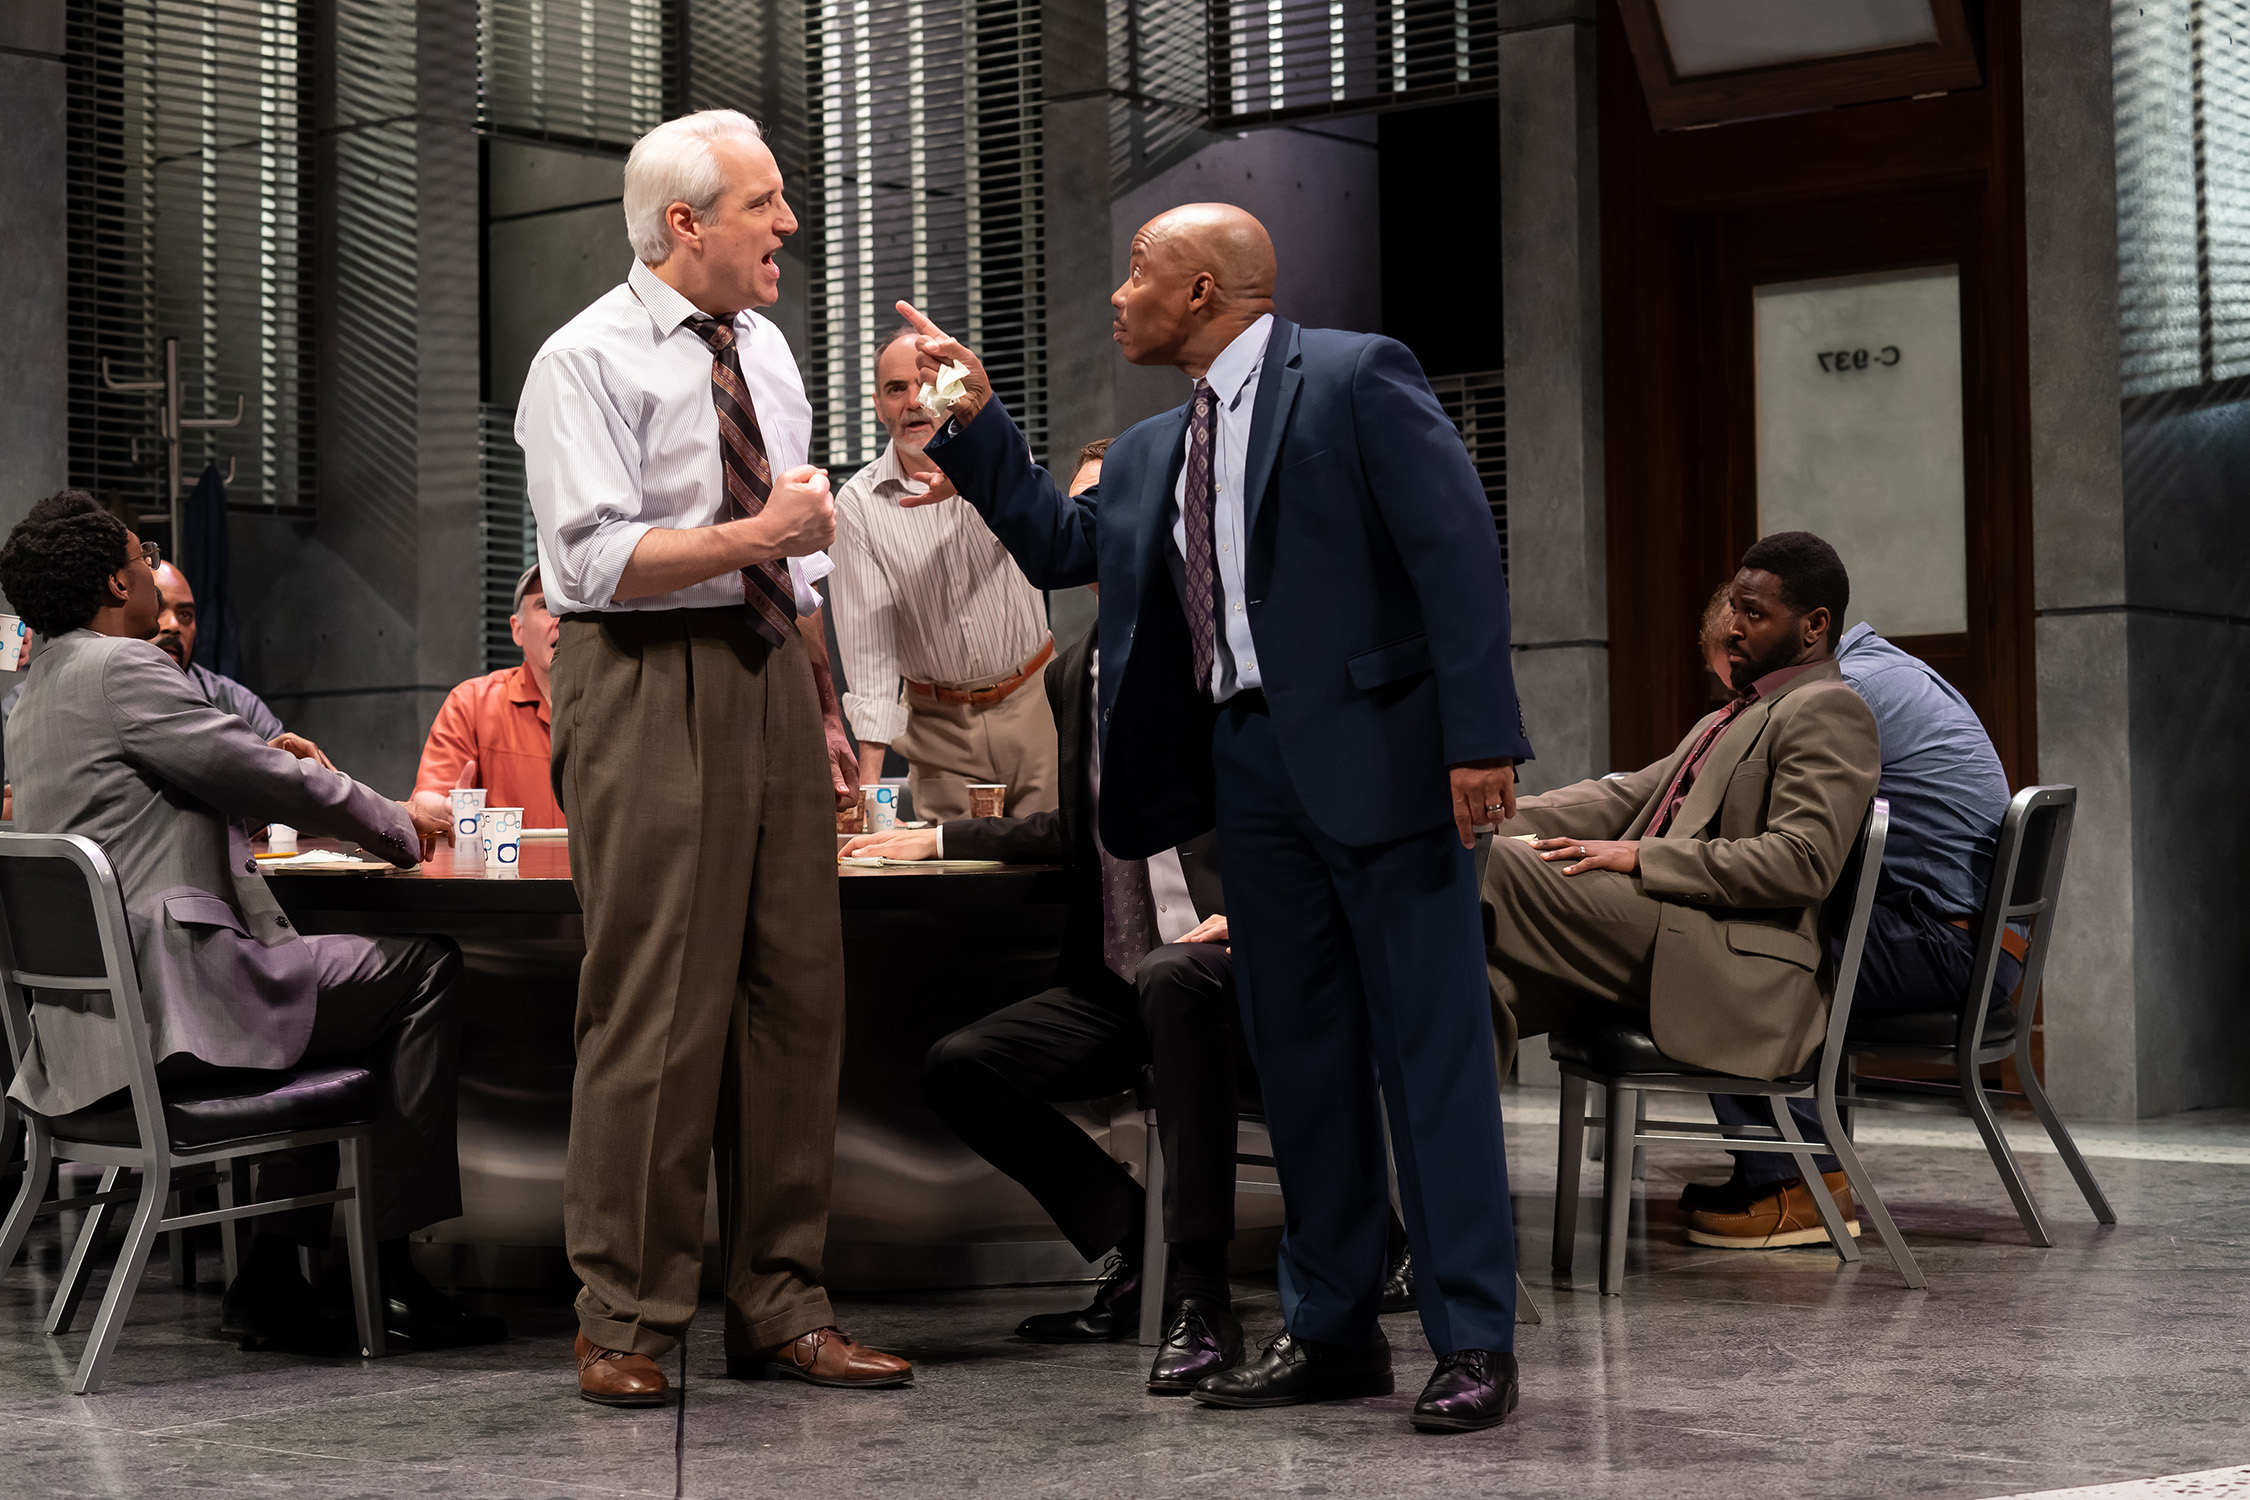 Two jurors (actors Michael Russotto and Erik King) stand, exchanging angry words in a deliberation room. Around them, seven other seated jurors sit with surprised faces. Image is from the Ford's Theatre 2019 production of Twelve Angry Men, directed by Sheldon Epps. Photo by Scott Suchman